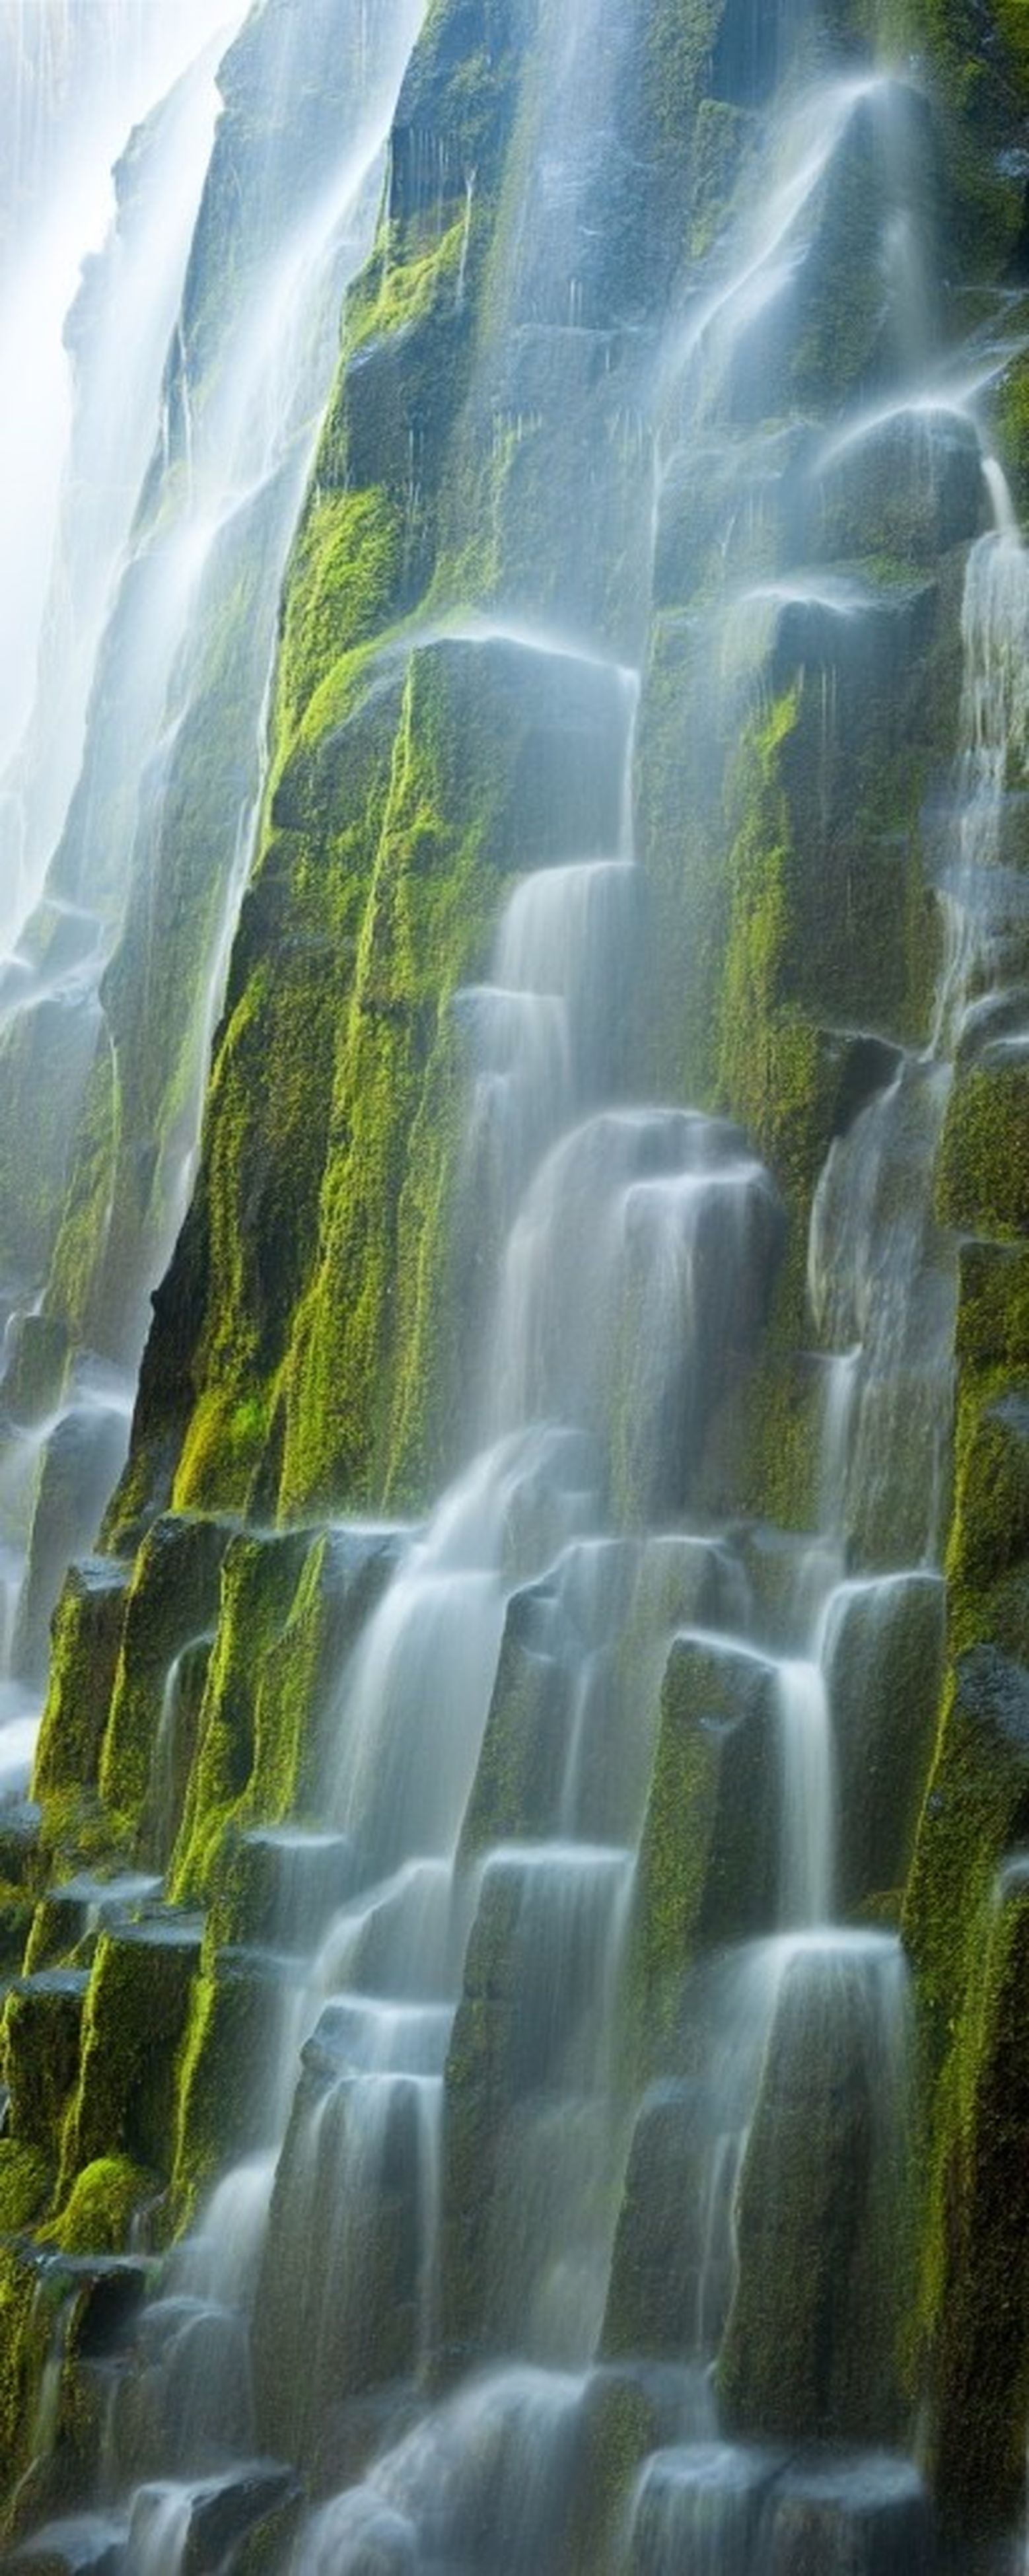 waterfall, beauty in nature, water, motion, scenics, flowing water, nature, flowing, tranquility, long exposure, tranquil scene, idyllic, day, rock - object, green color, landscape, outdoors, high angle view, non-urban scene, no people